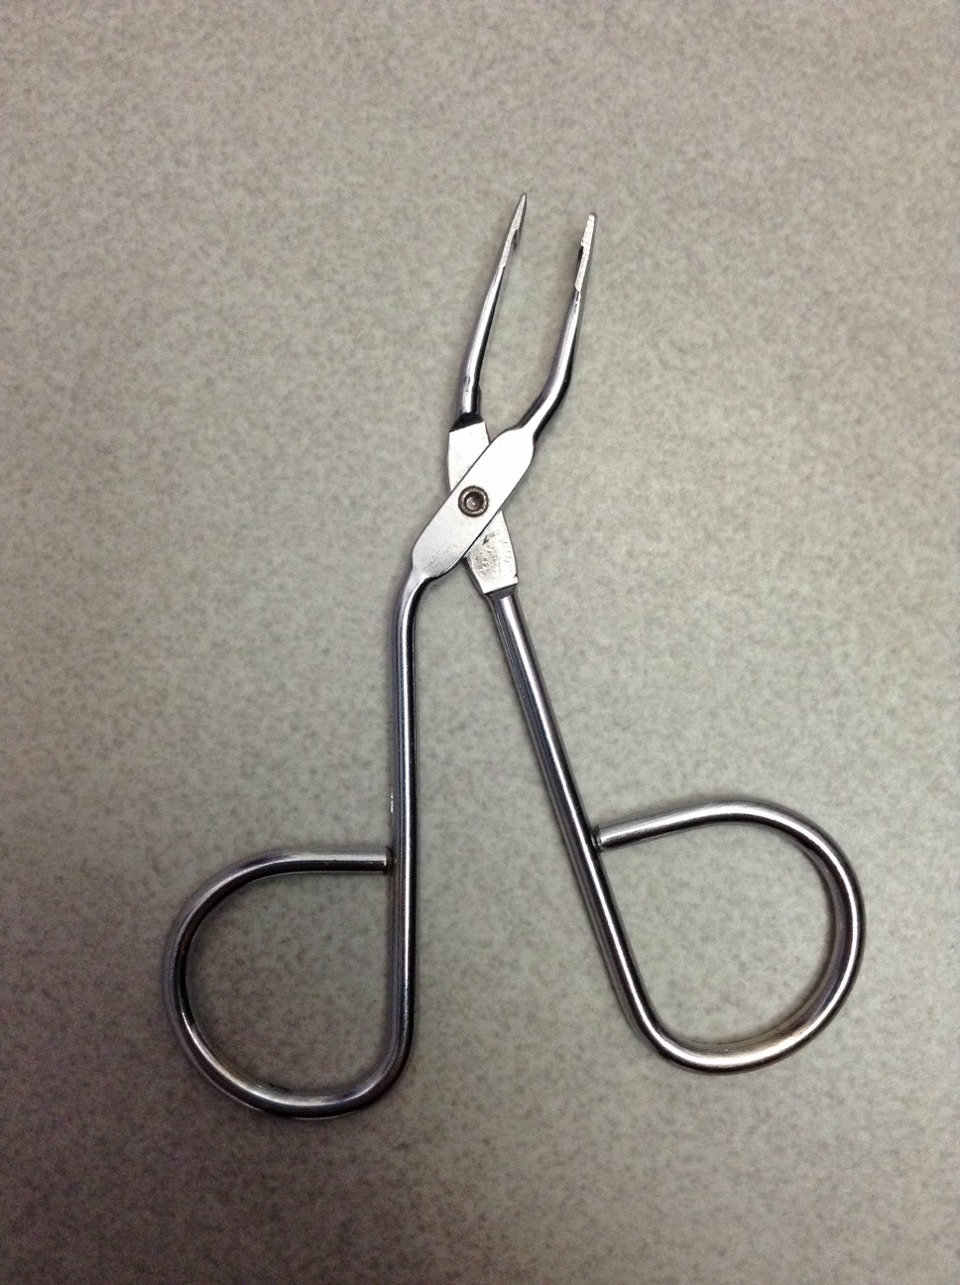 Tweezers with handles give you more control, like these